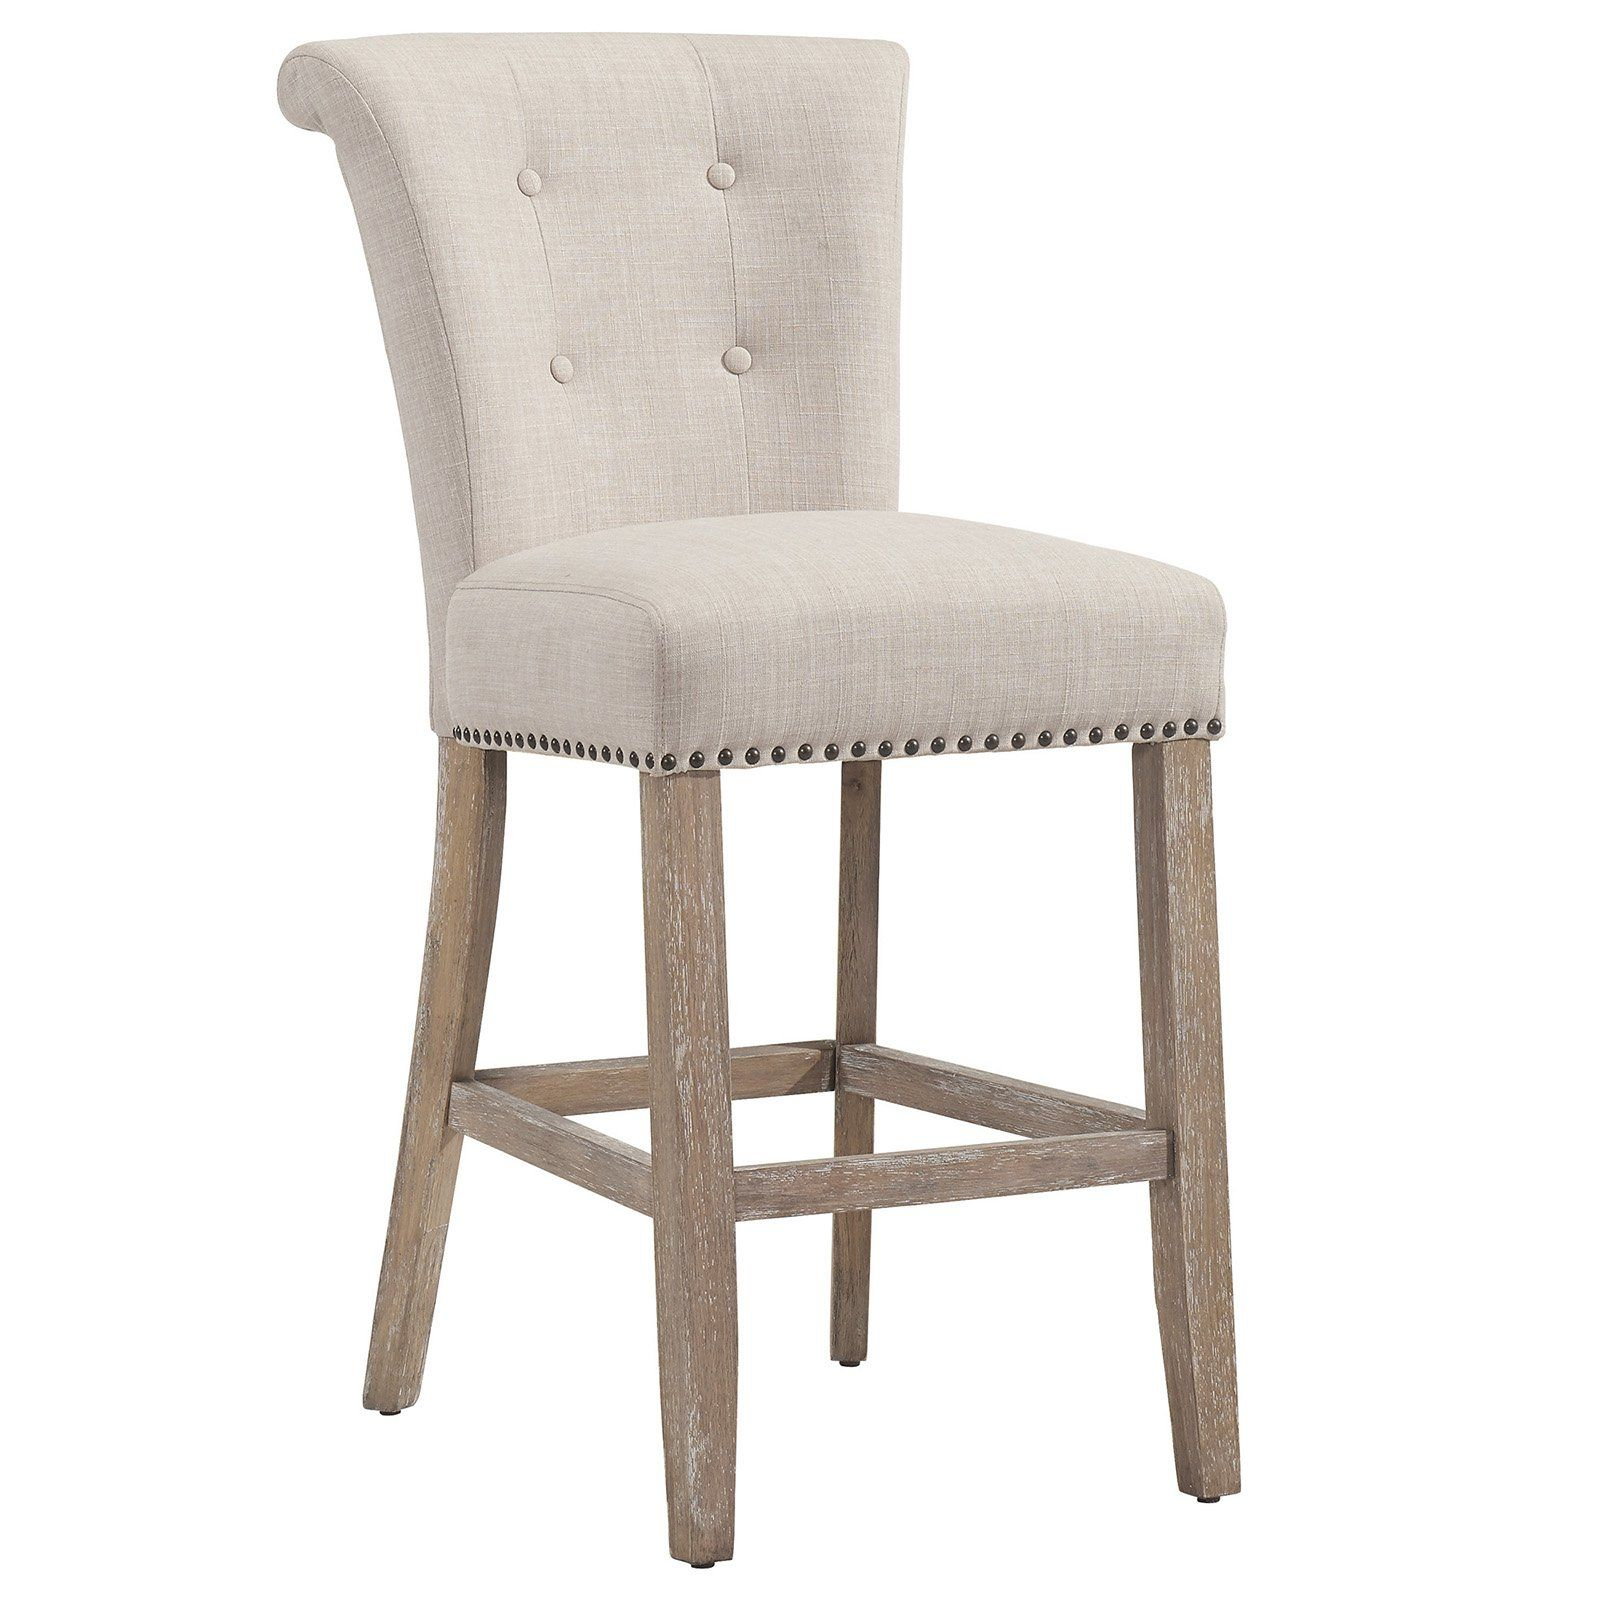 Nspire Selma 26 In Upholstered Counter Stool Set Of 2 Counter